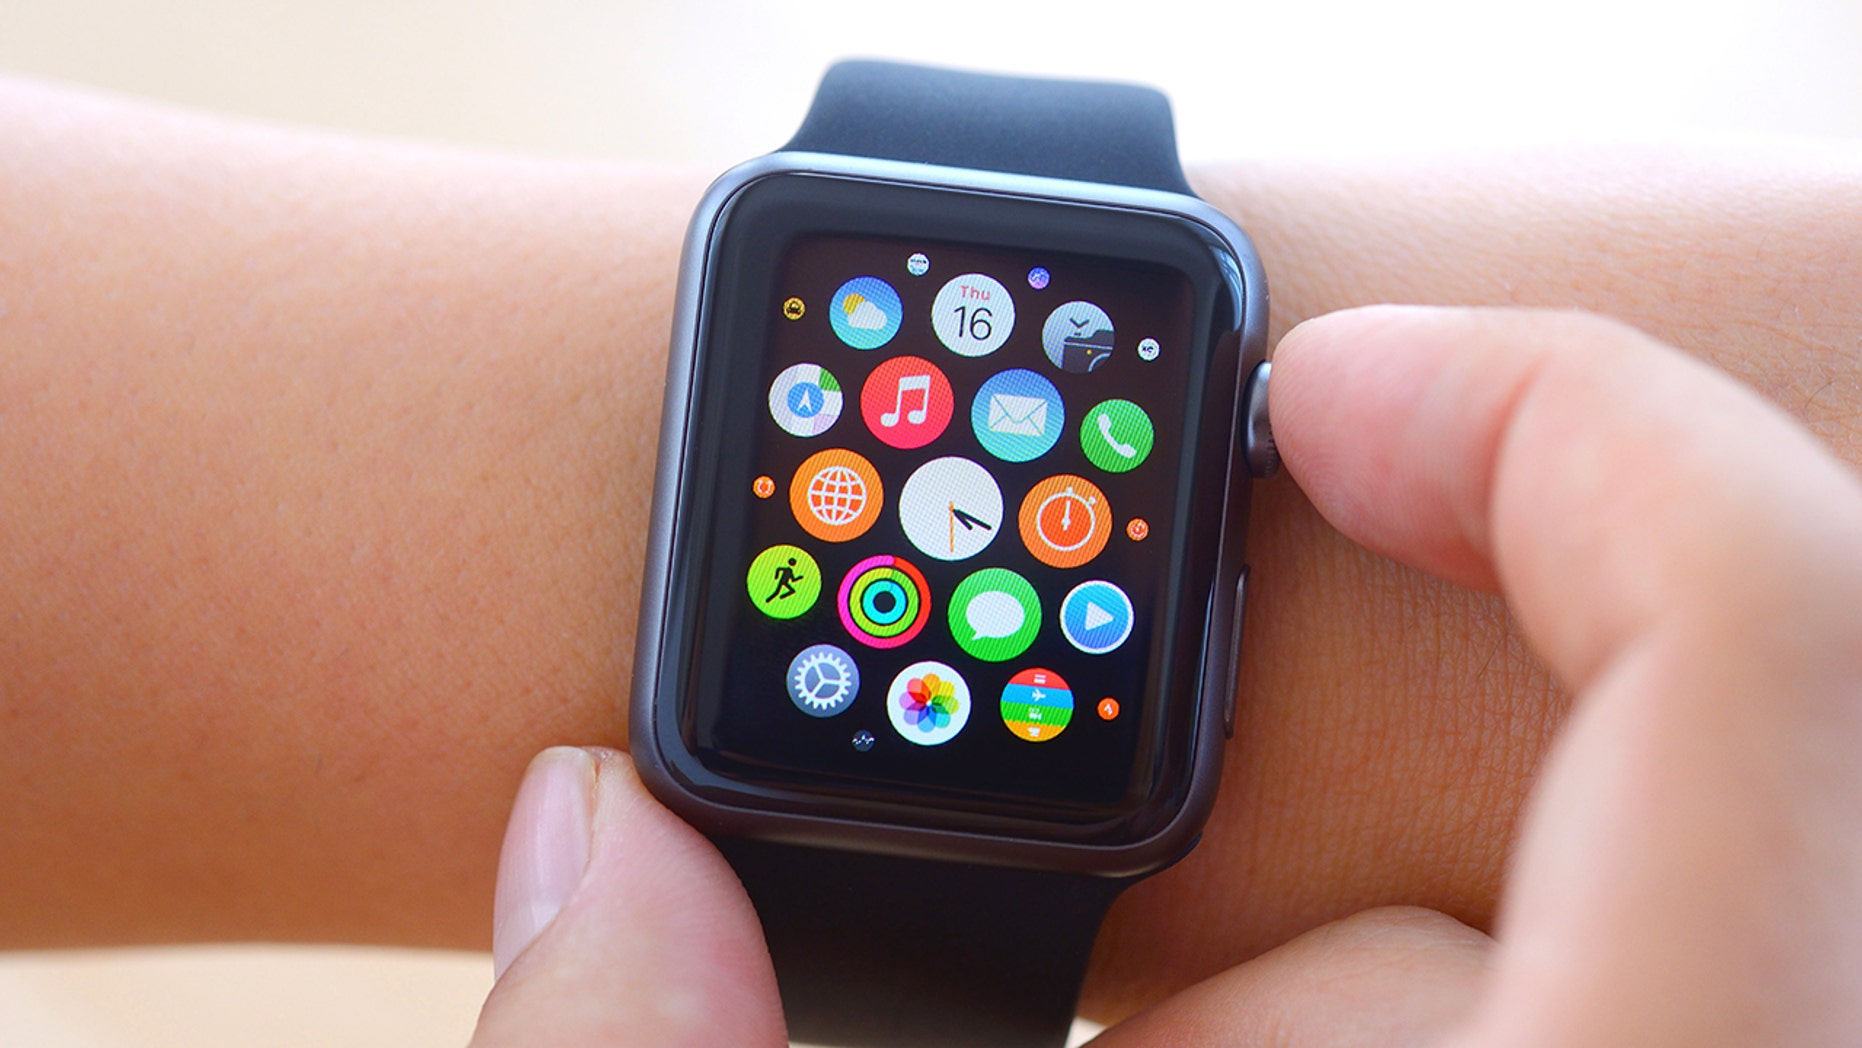 digital products İstanbul, Turkey - July 16 2015: Hand touching an Apple Watch displaying home screen. Apple Watch is a smart watch, devices developed by Apple Inc.